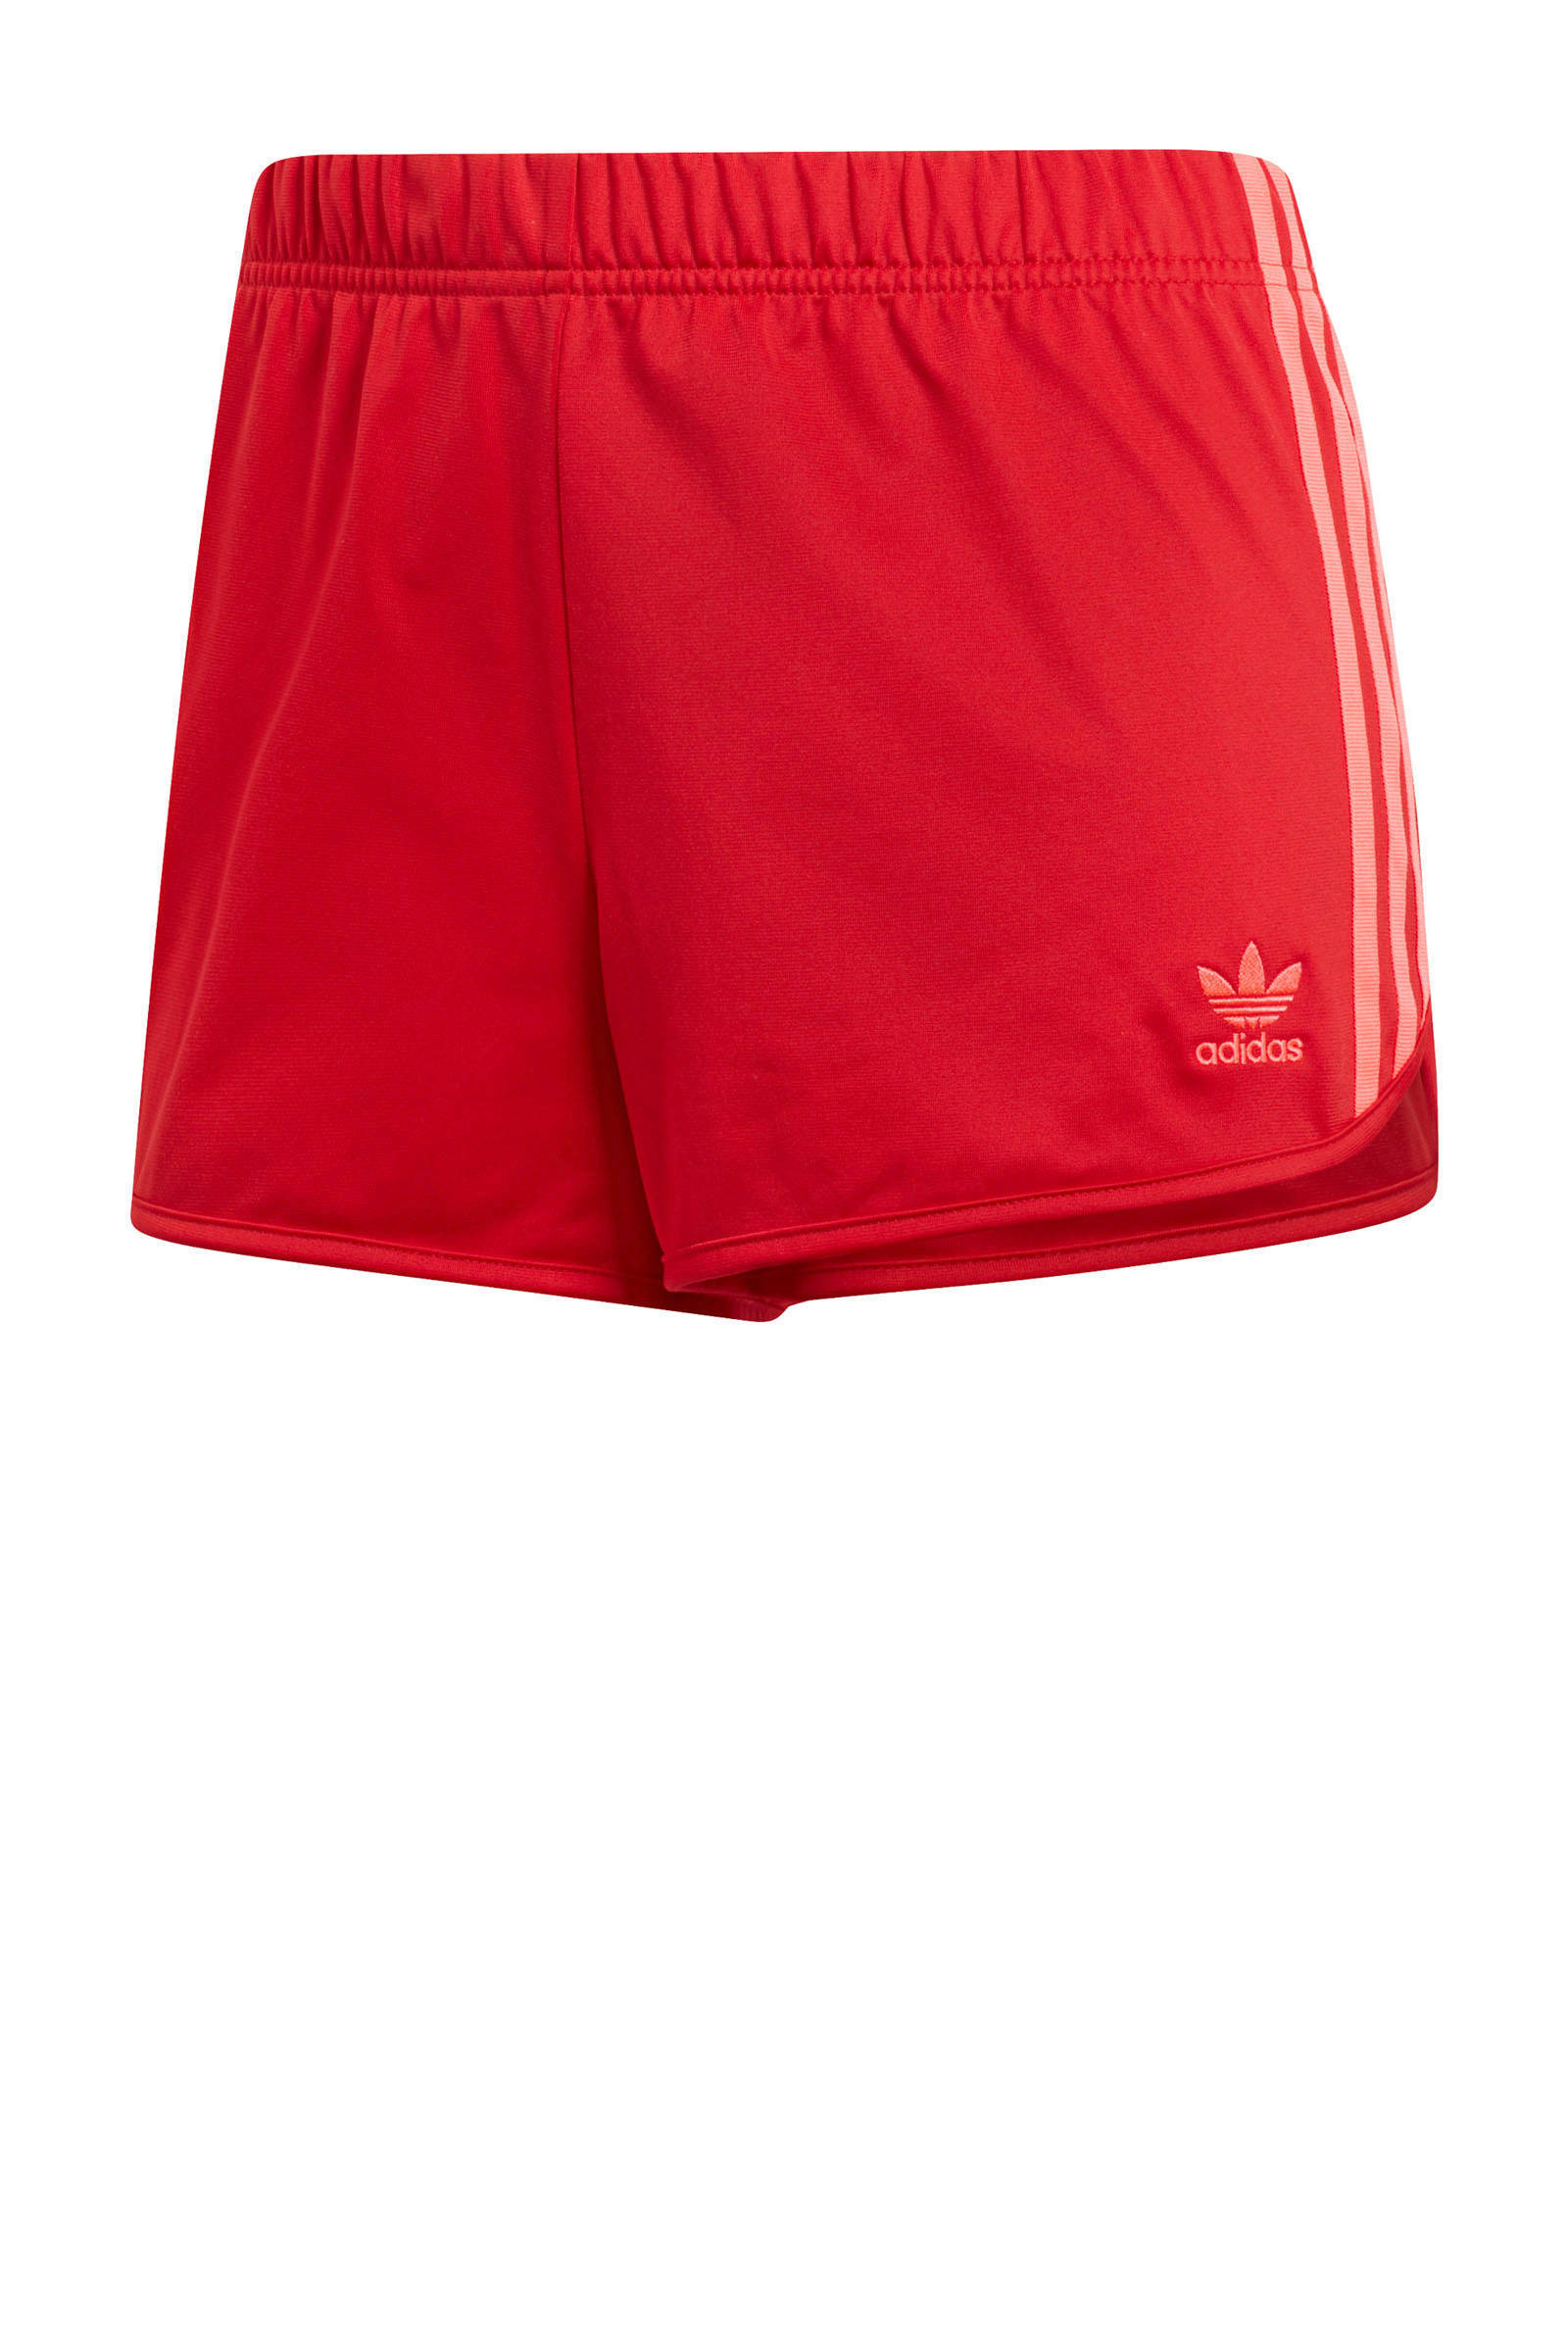 adidas Originals Adicolor short rood | wehkamp